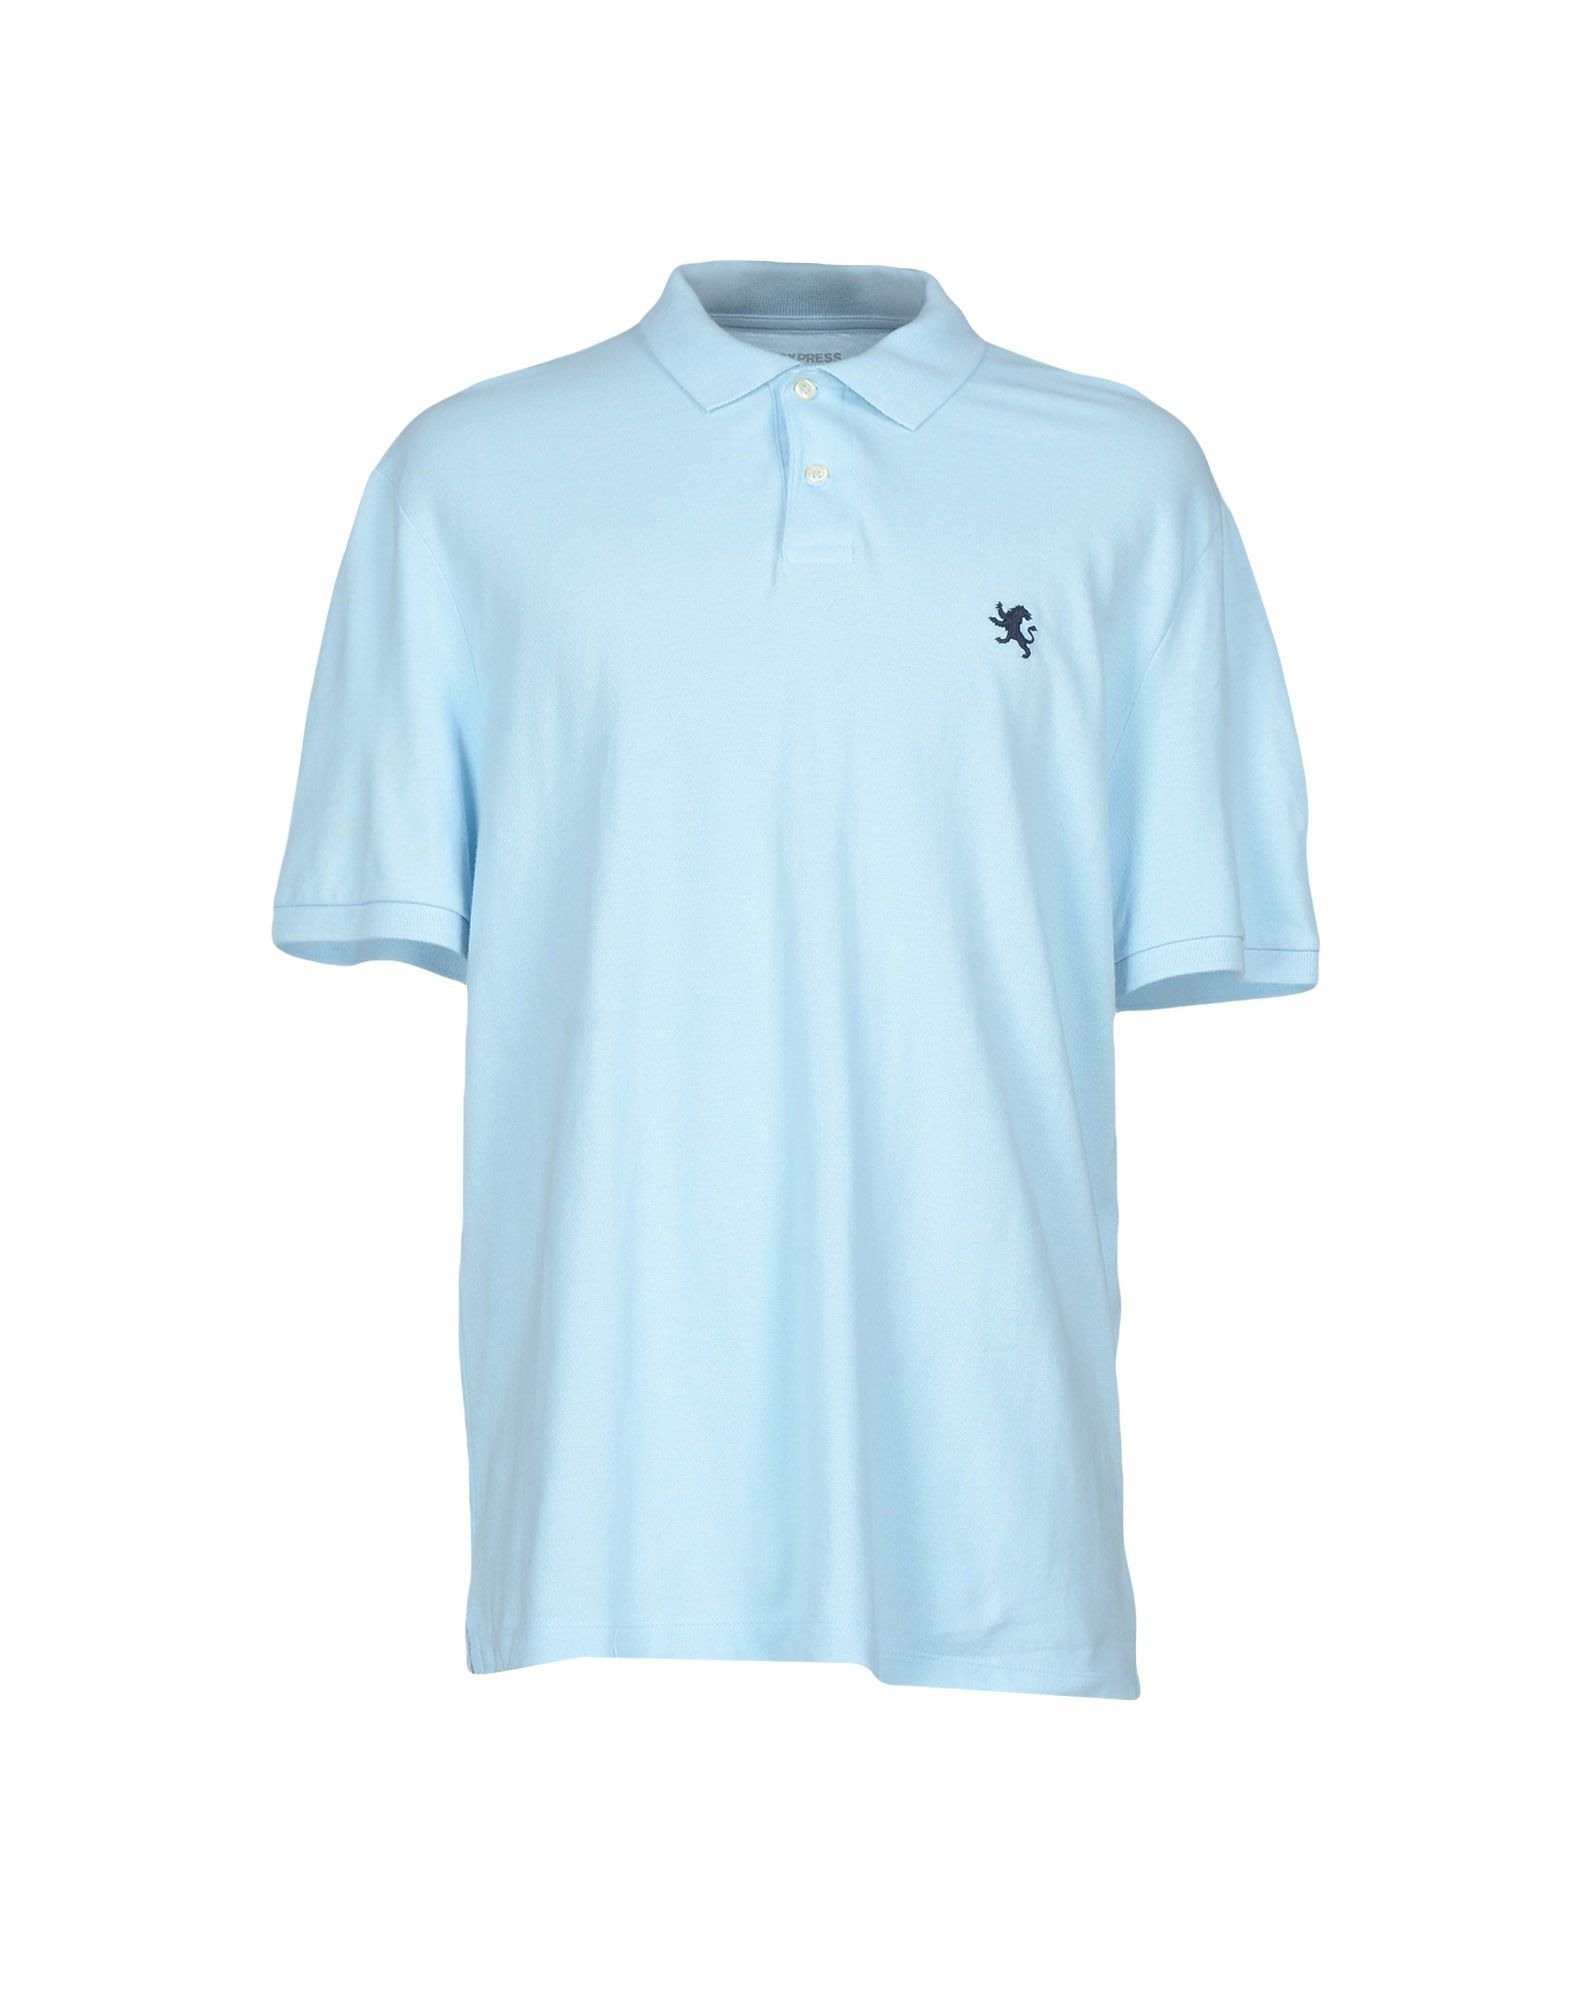 Express Polo Shirt In Blue For Men Lyst